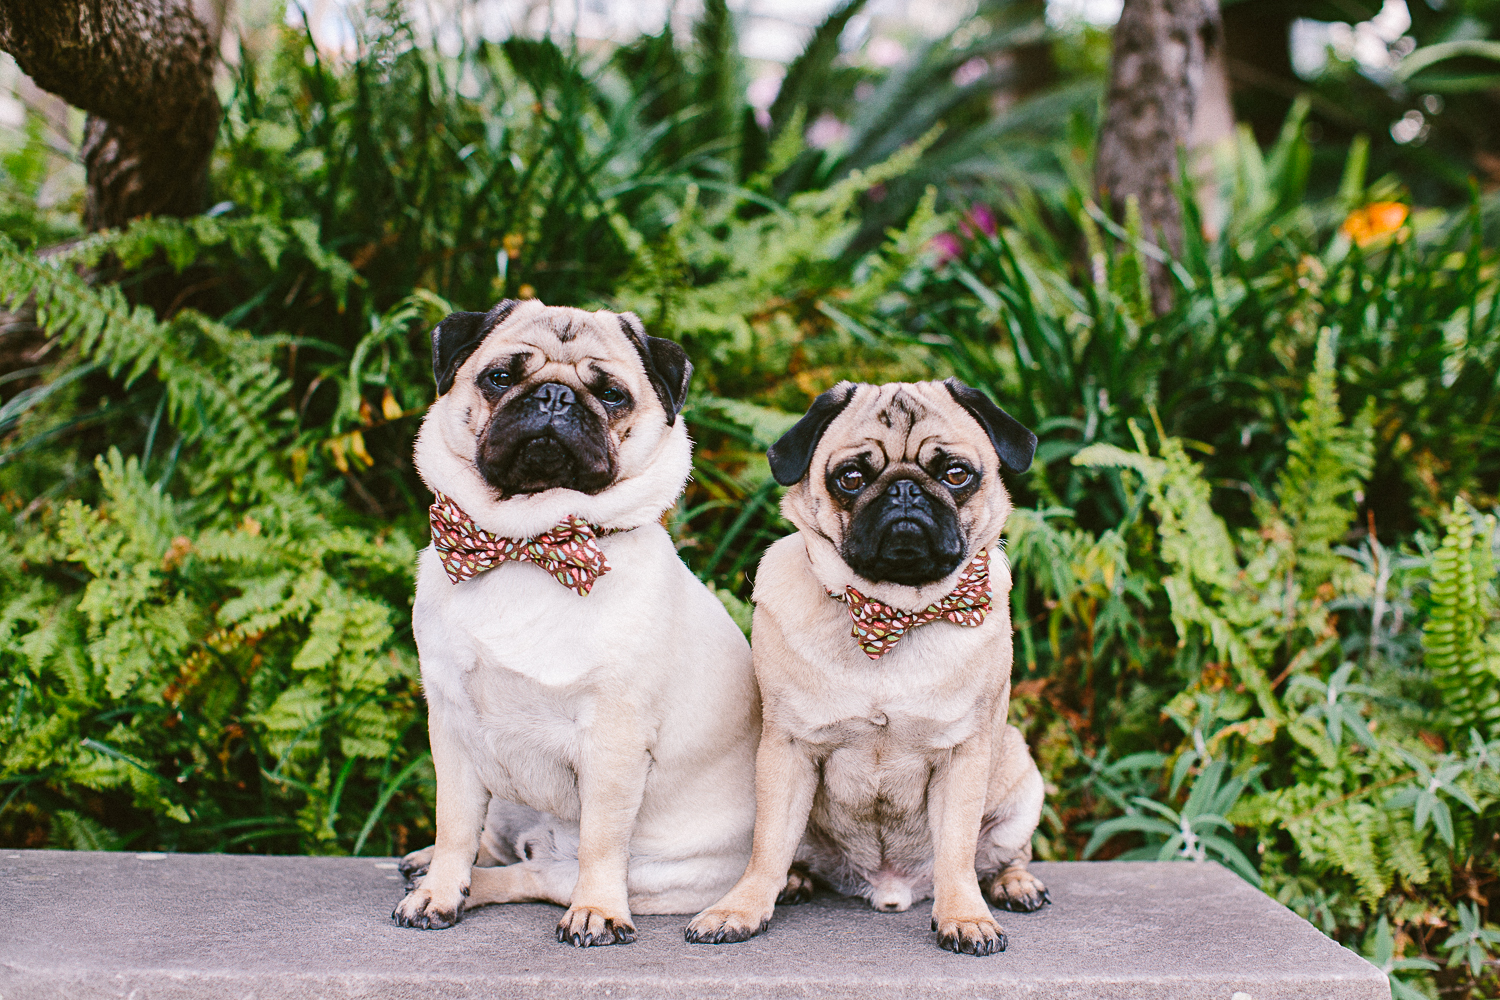 twoguineapigs_pet_photography_oh_jaffa_picnic_pugs_1500-21.jpg